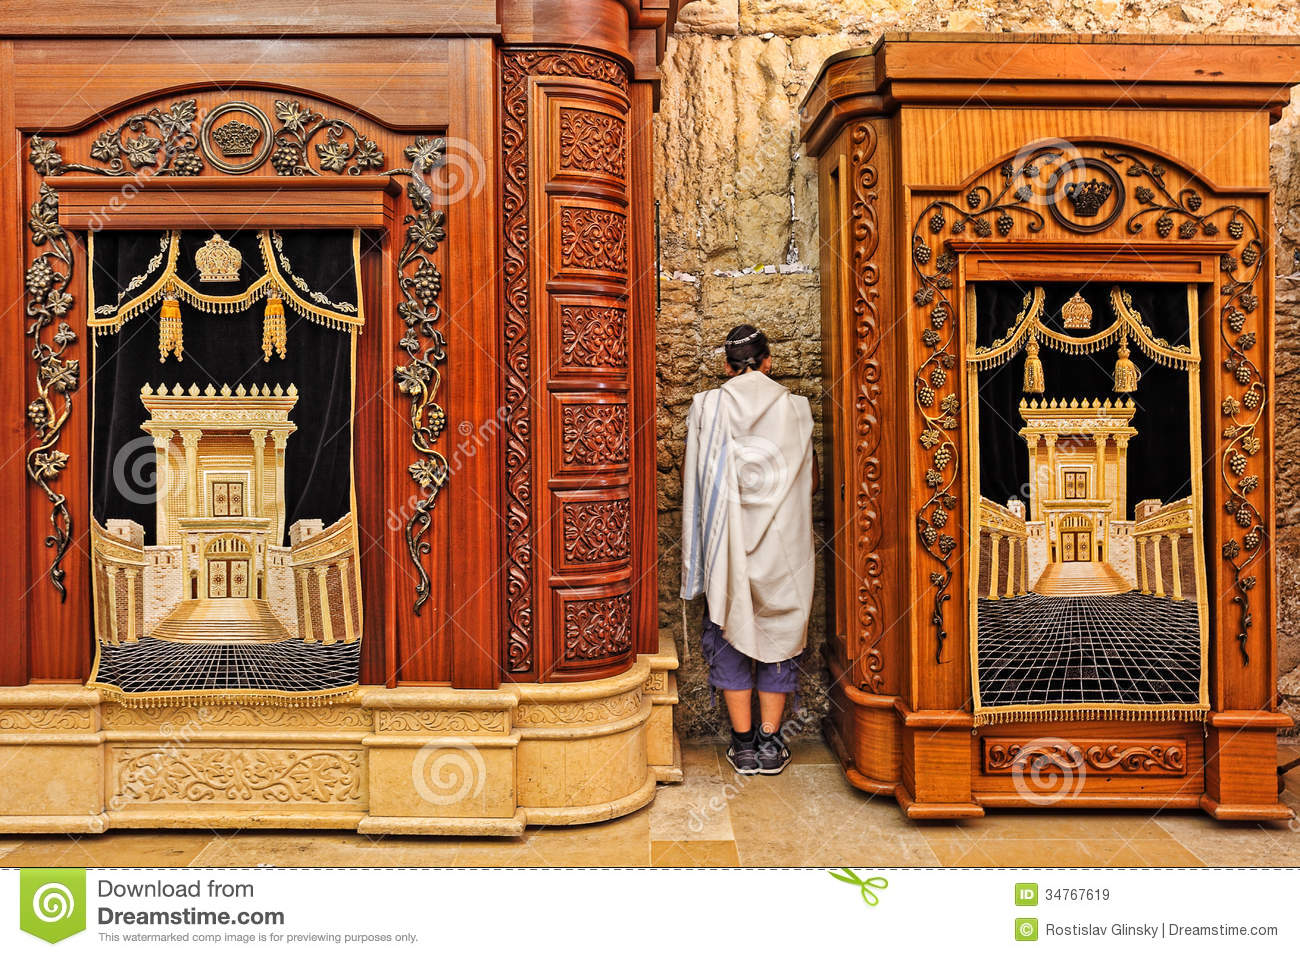 Wooden Cabinets With Torah At Western Wall. Royalty Free Stock